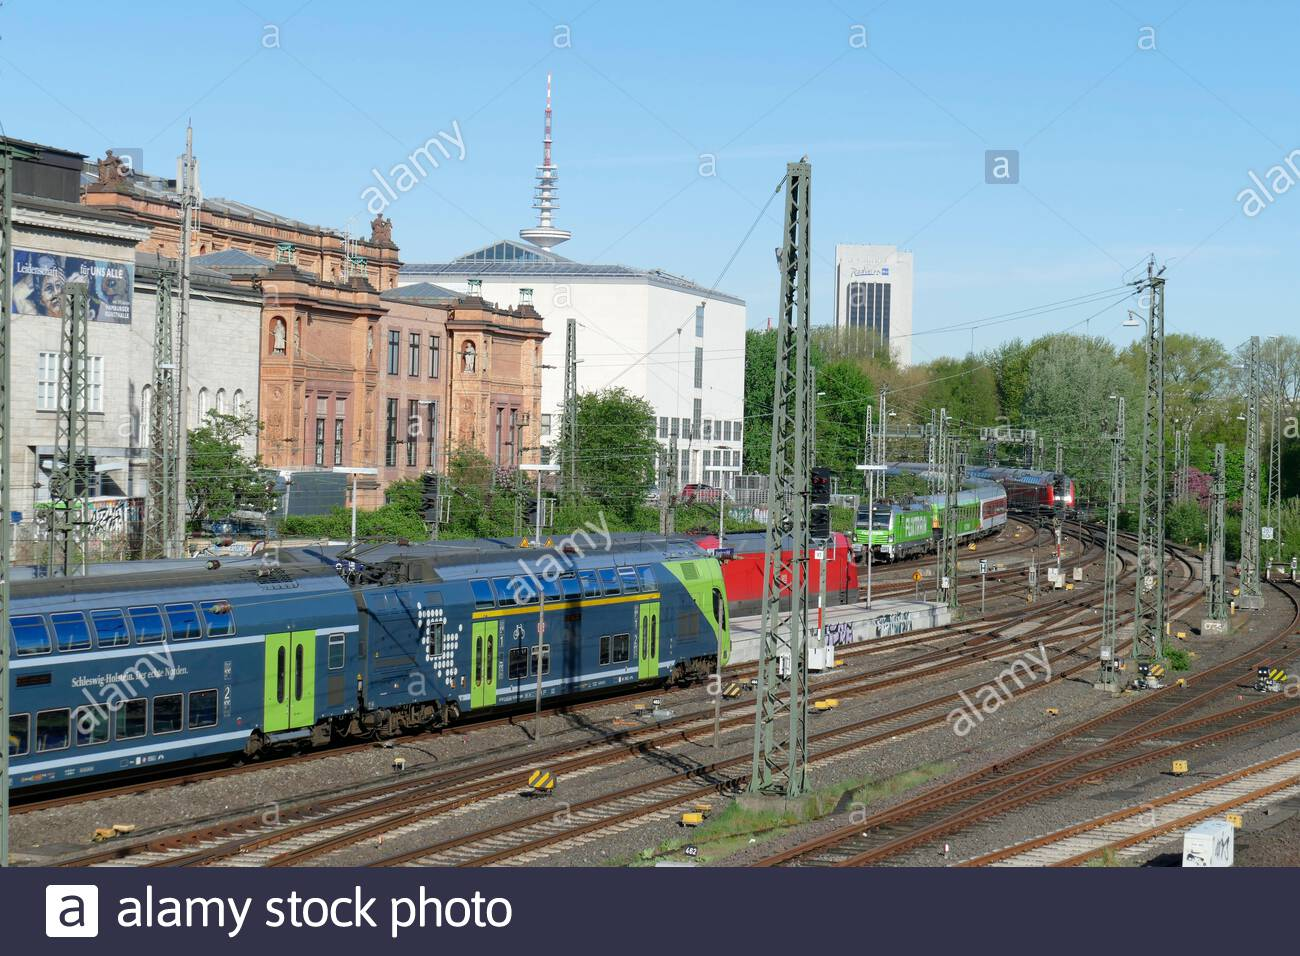 kunsthalle and muter trains at hamburg central station hamburg germany europe 2B4JC8P